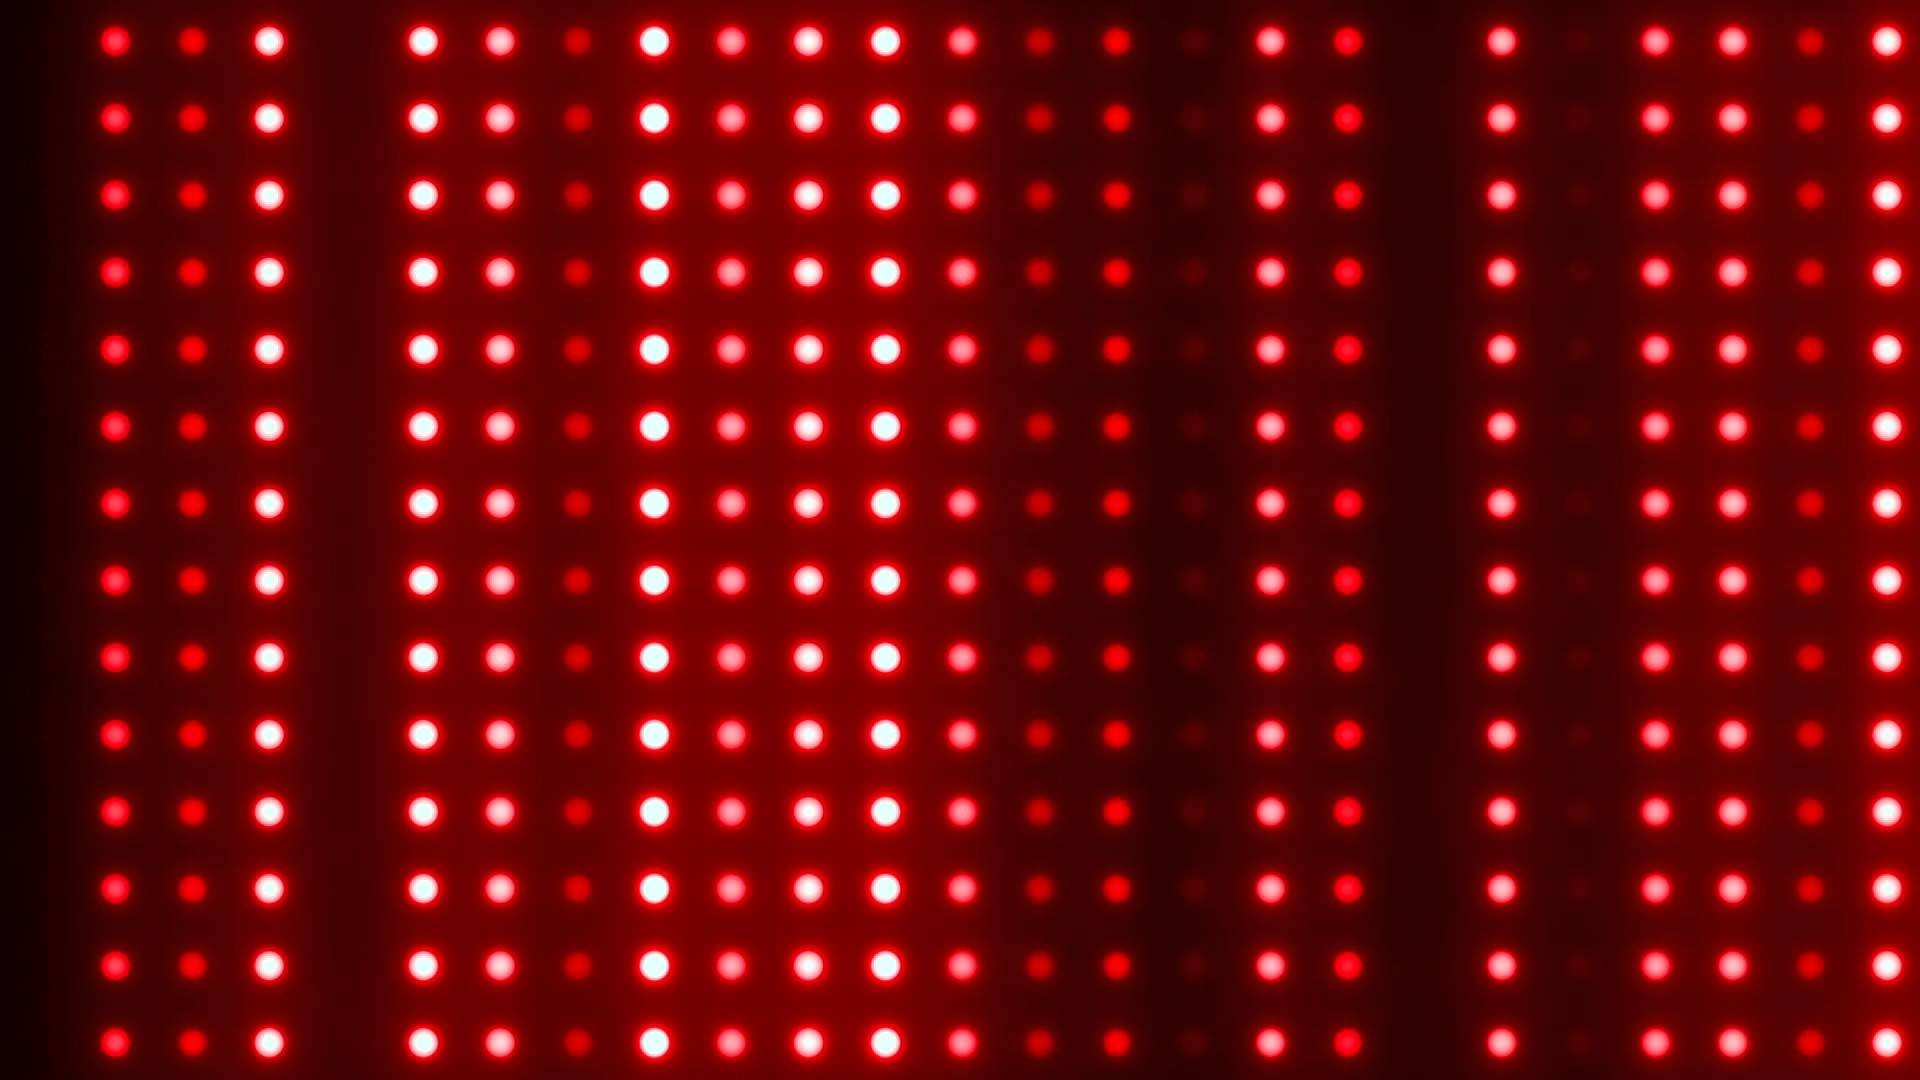 Light Red Background Download Free Beautiful Hd Backgrounds For